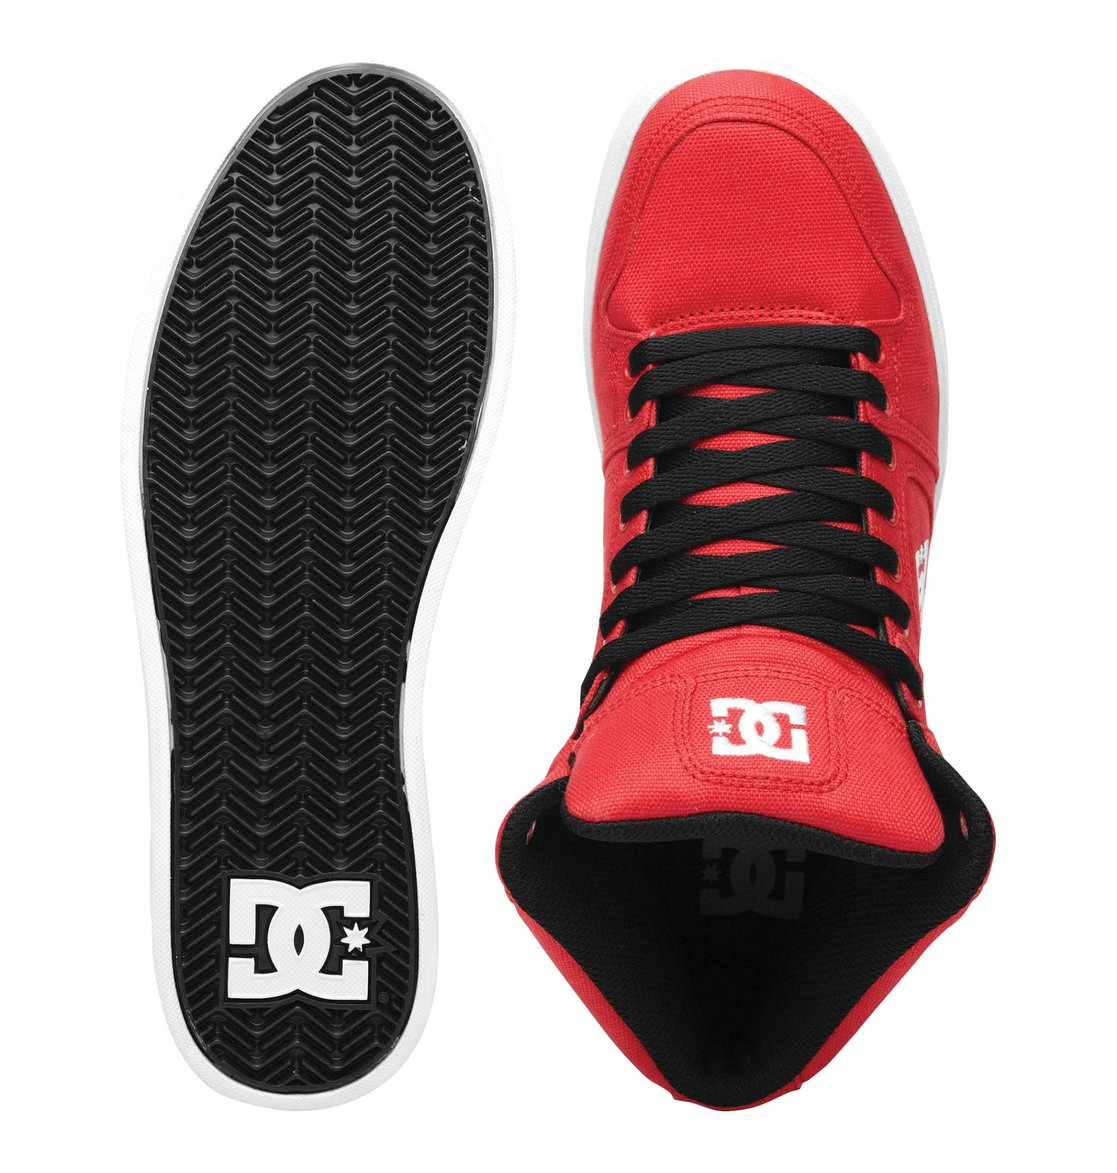 Outdoor Sports DC Union High Top Skate